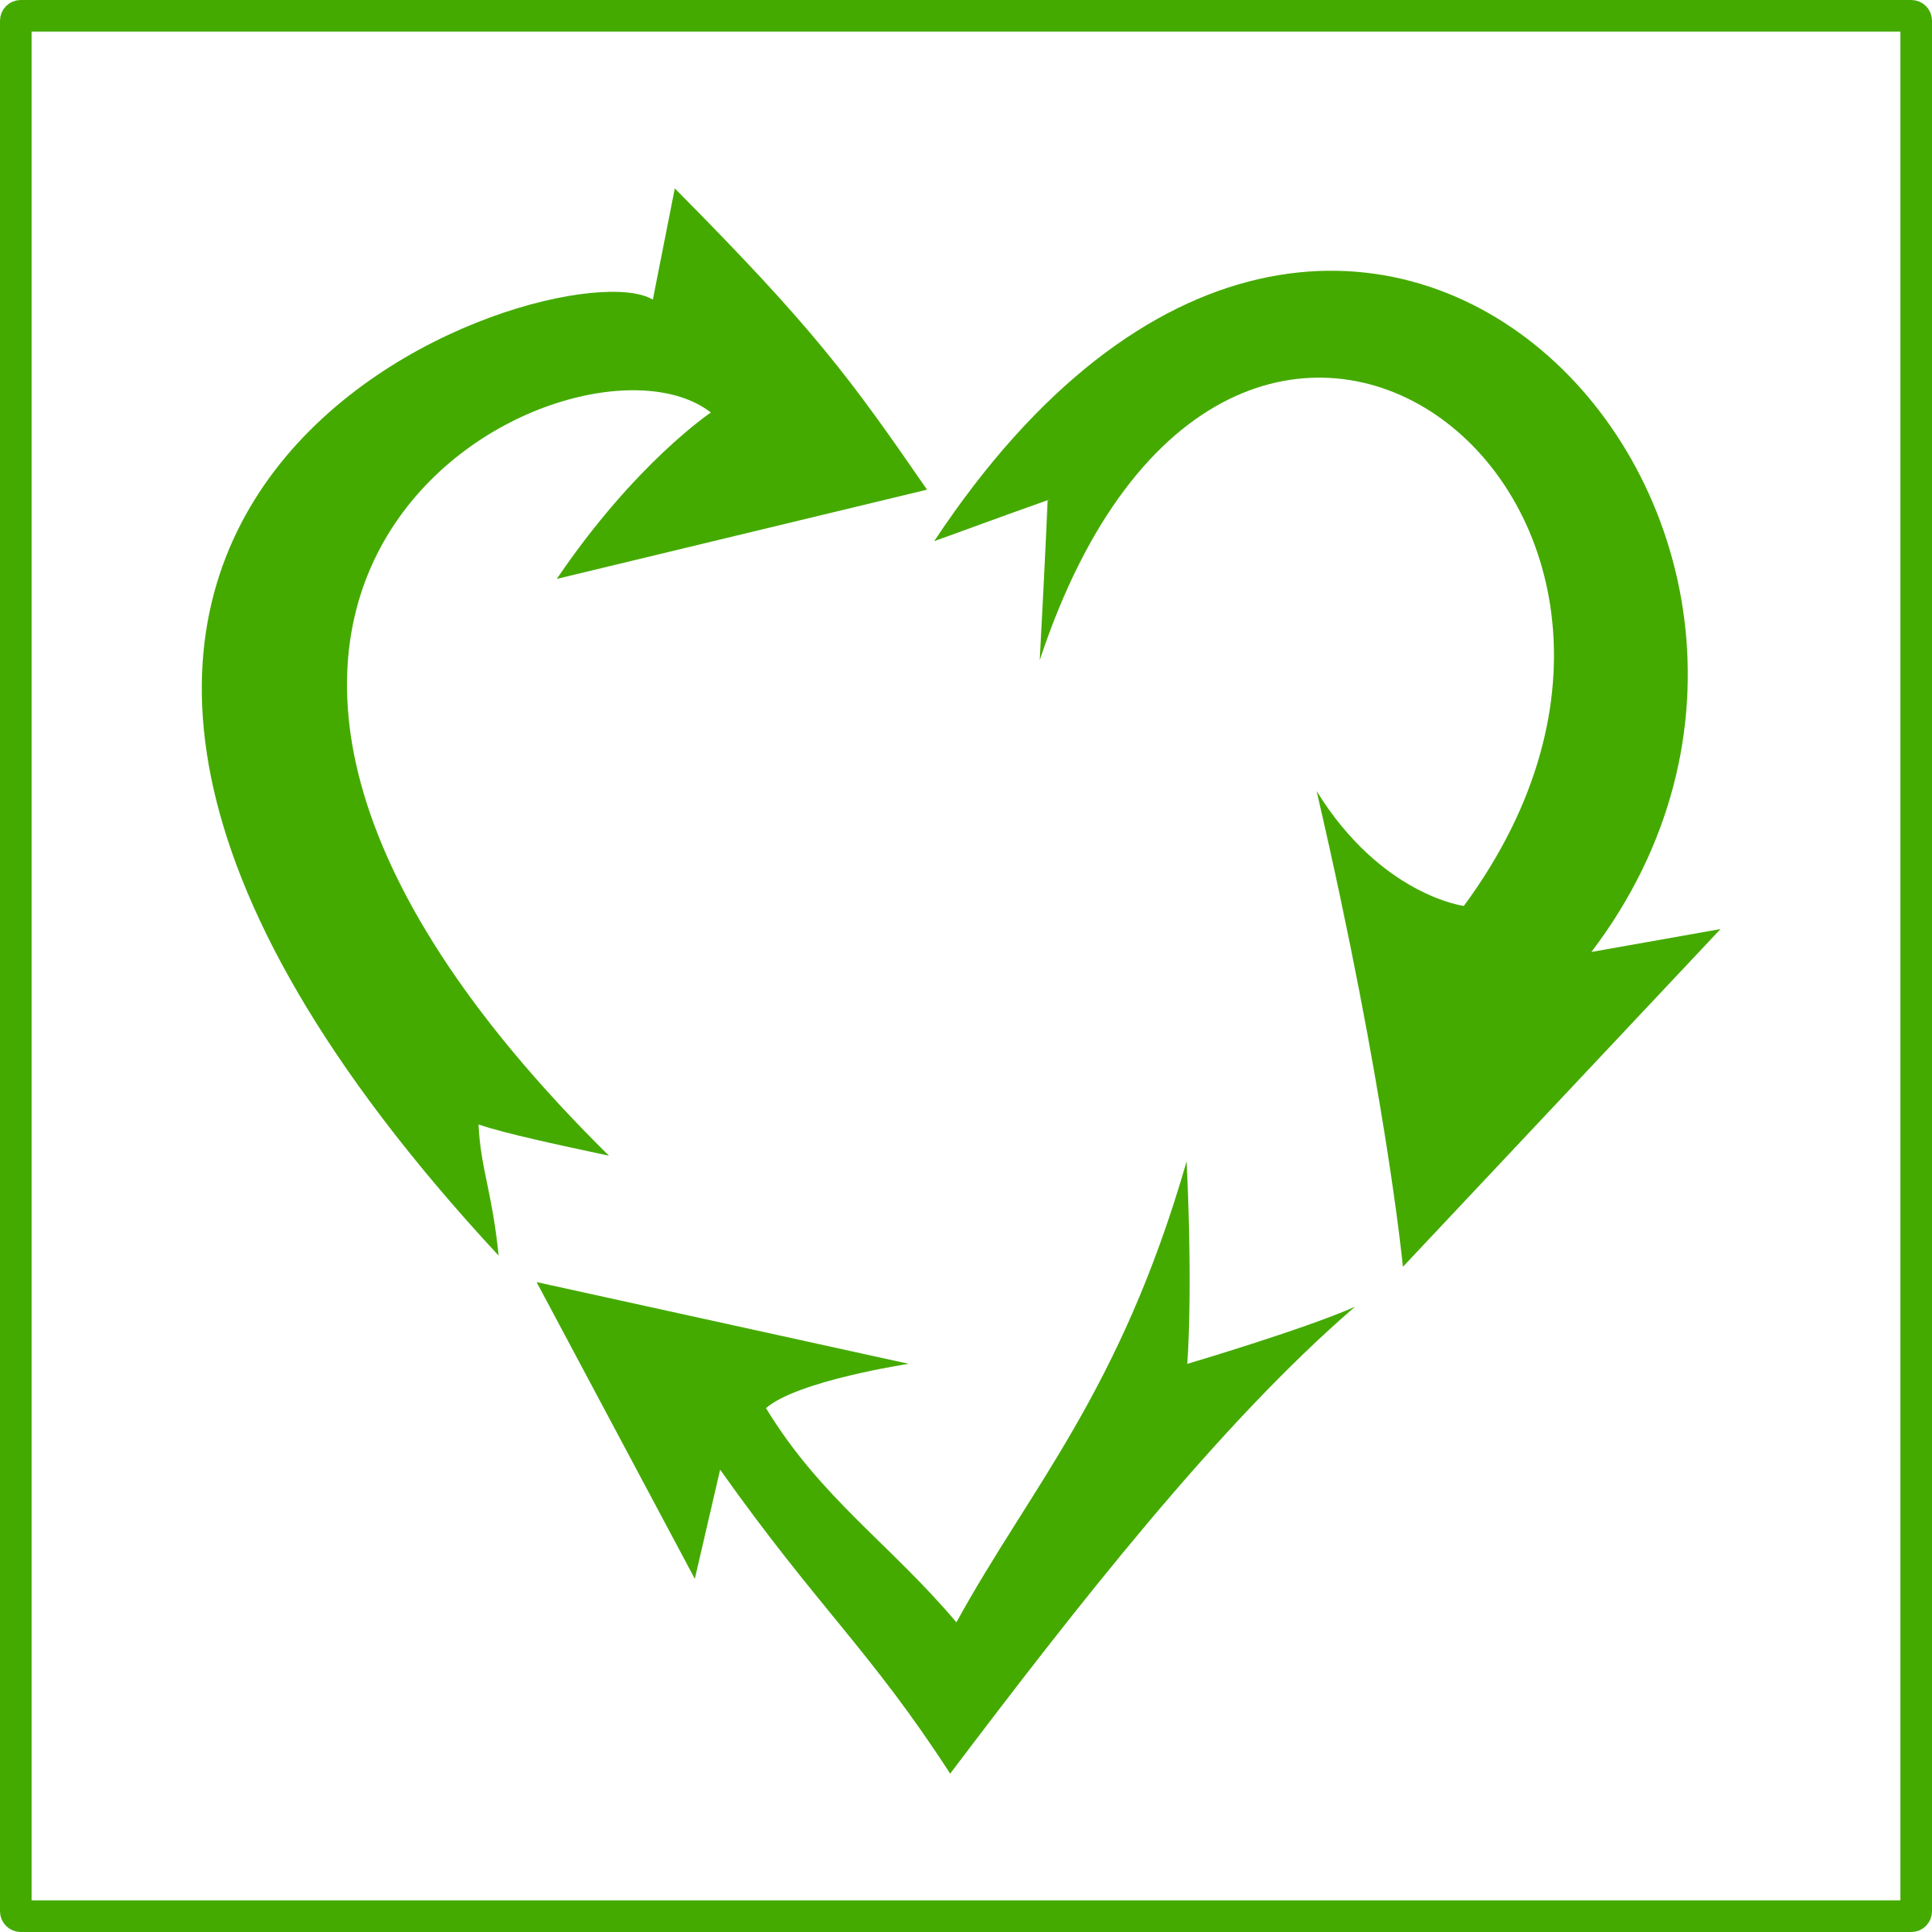 Recycle heart clipart png transparent library Clipart - recycle heart png transparent library